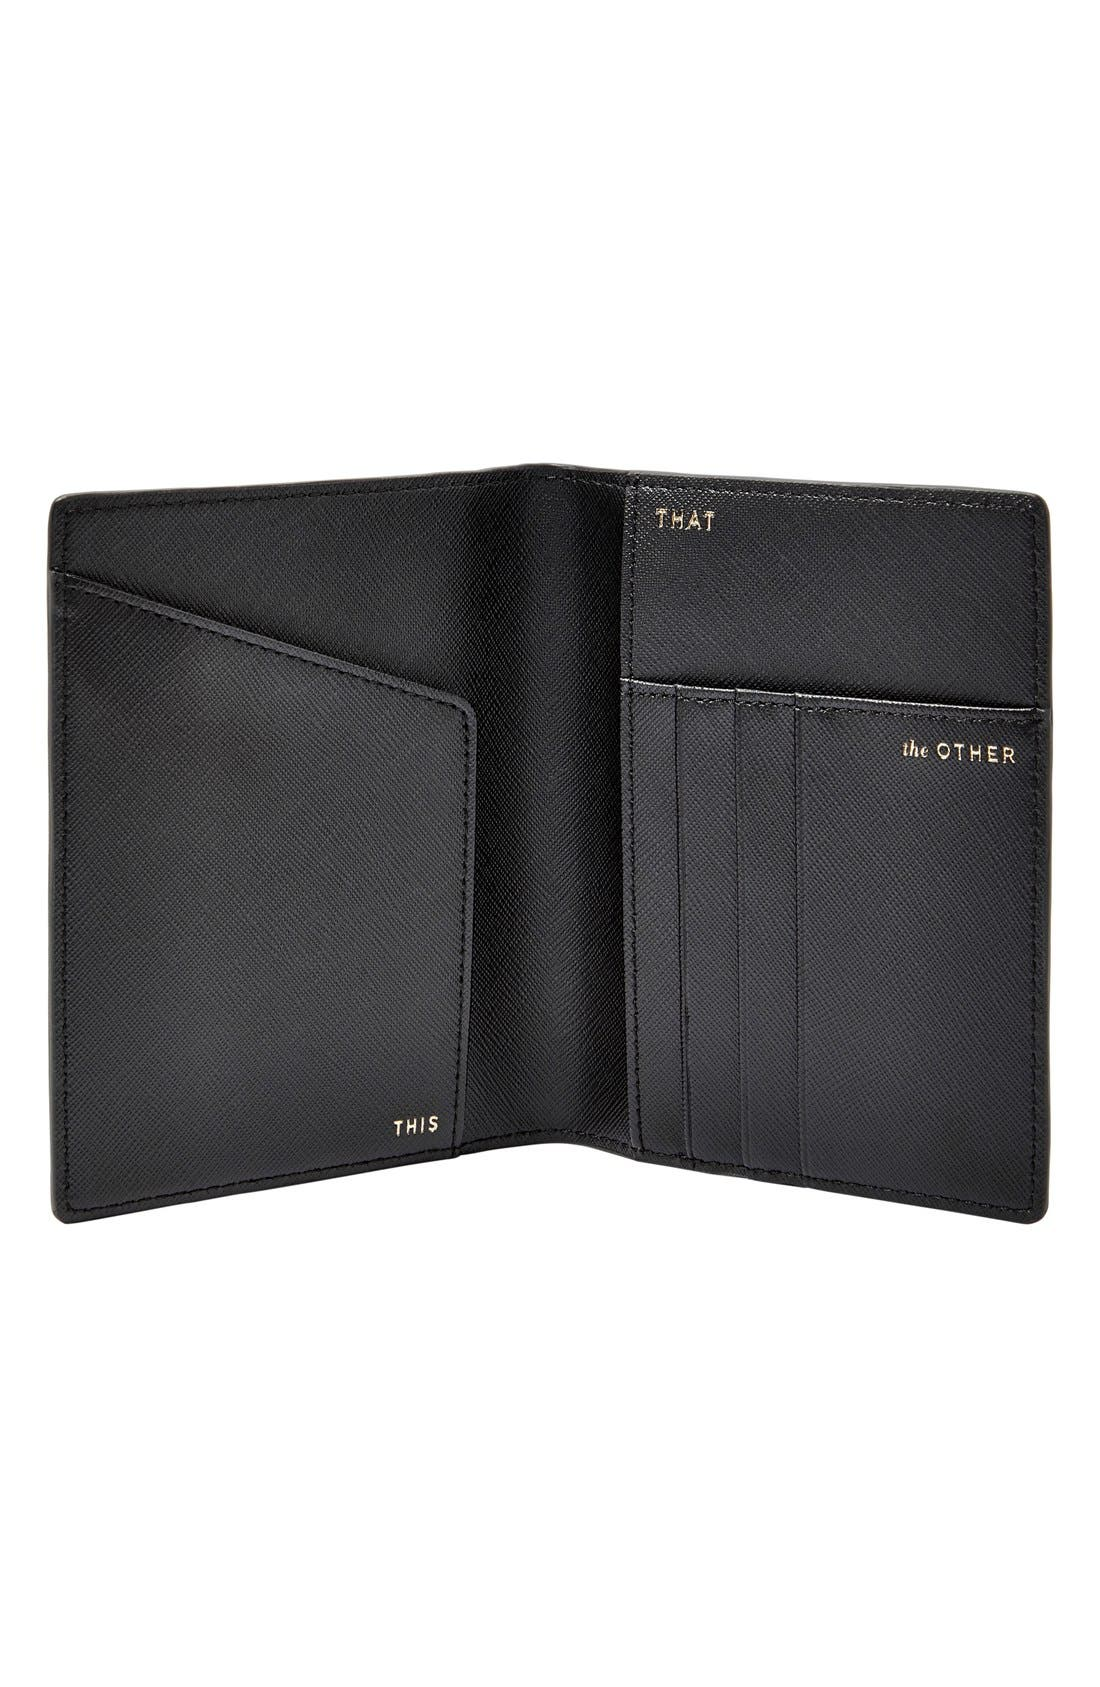 FOSSIL, 'RFID' Pebbled Leather Passport Case, Alternate thumbnail 2, color, 001